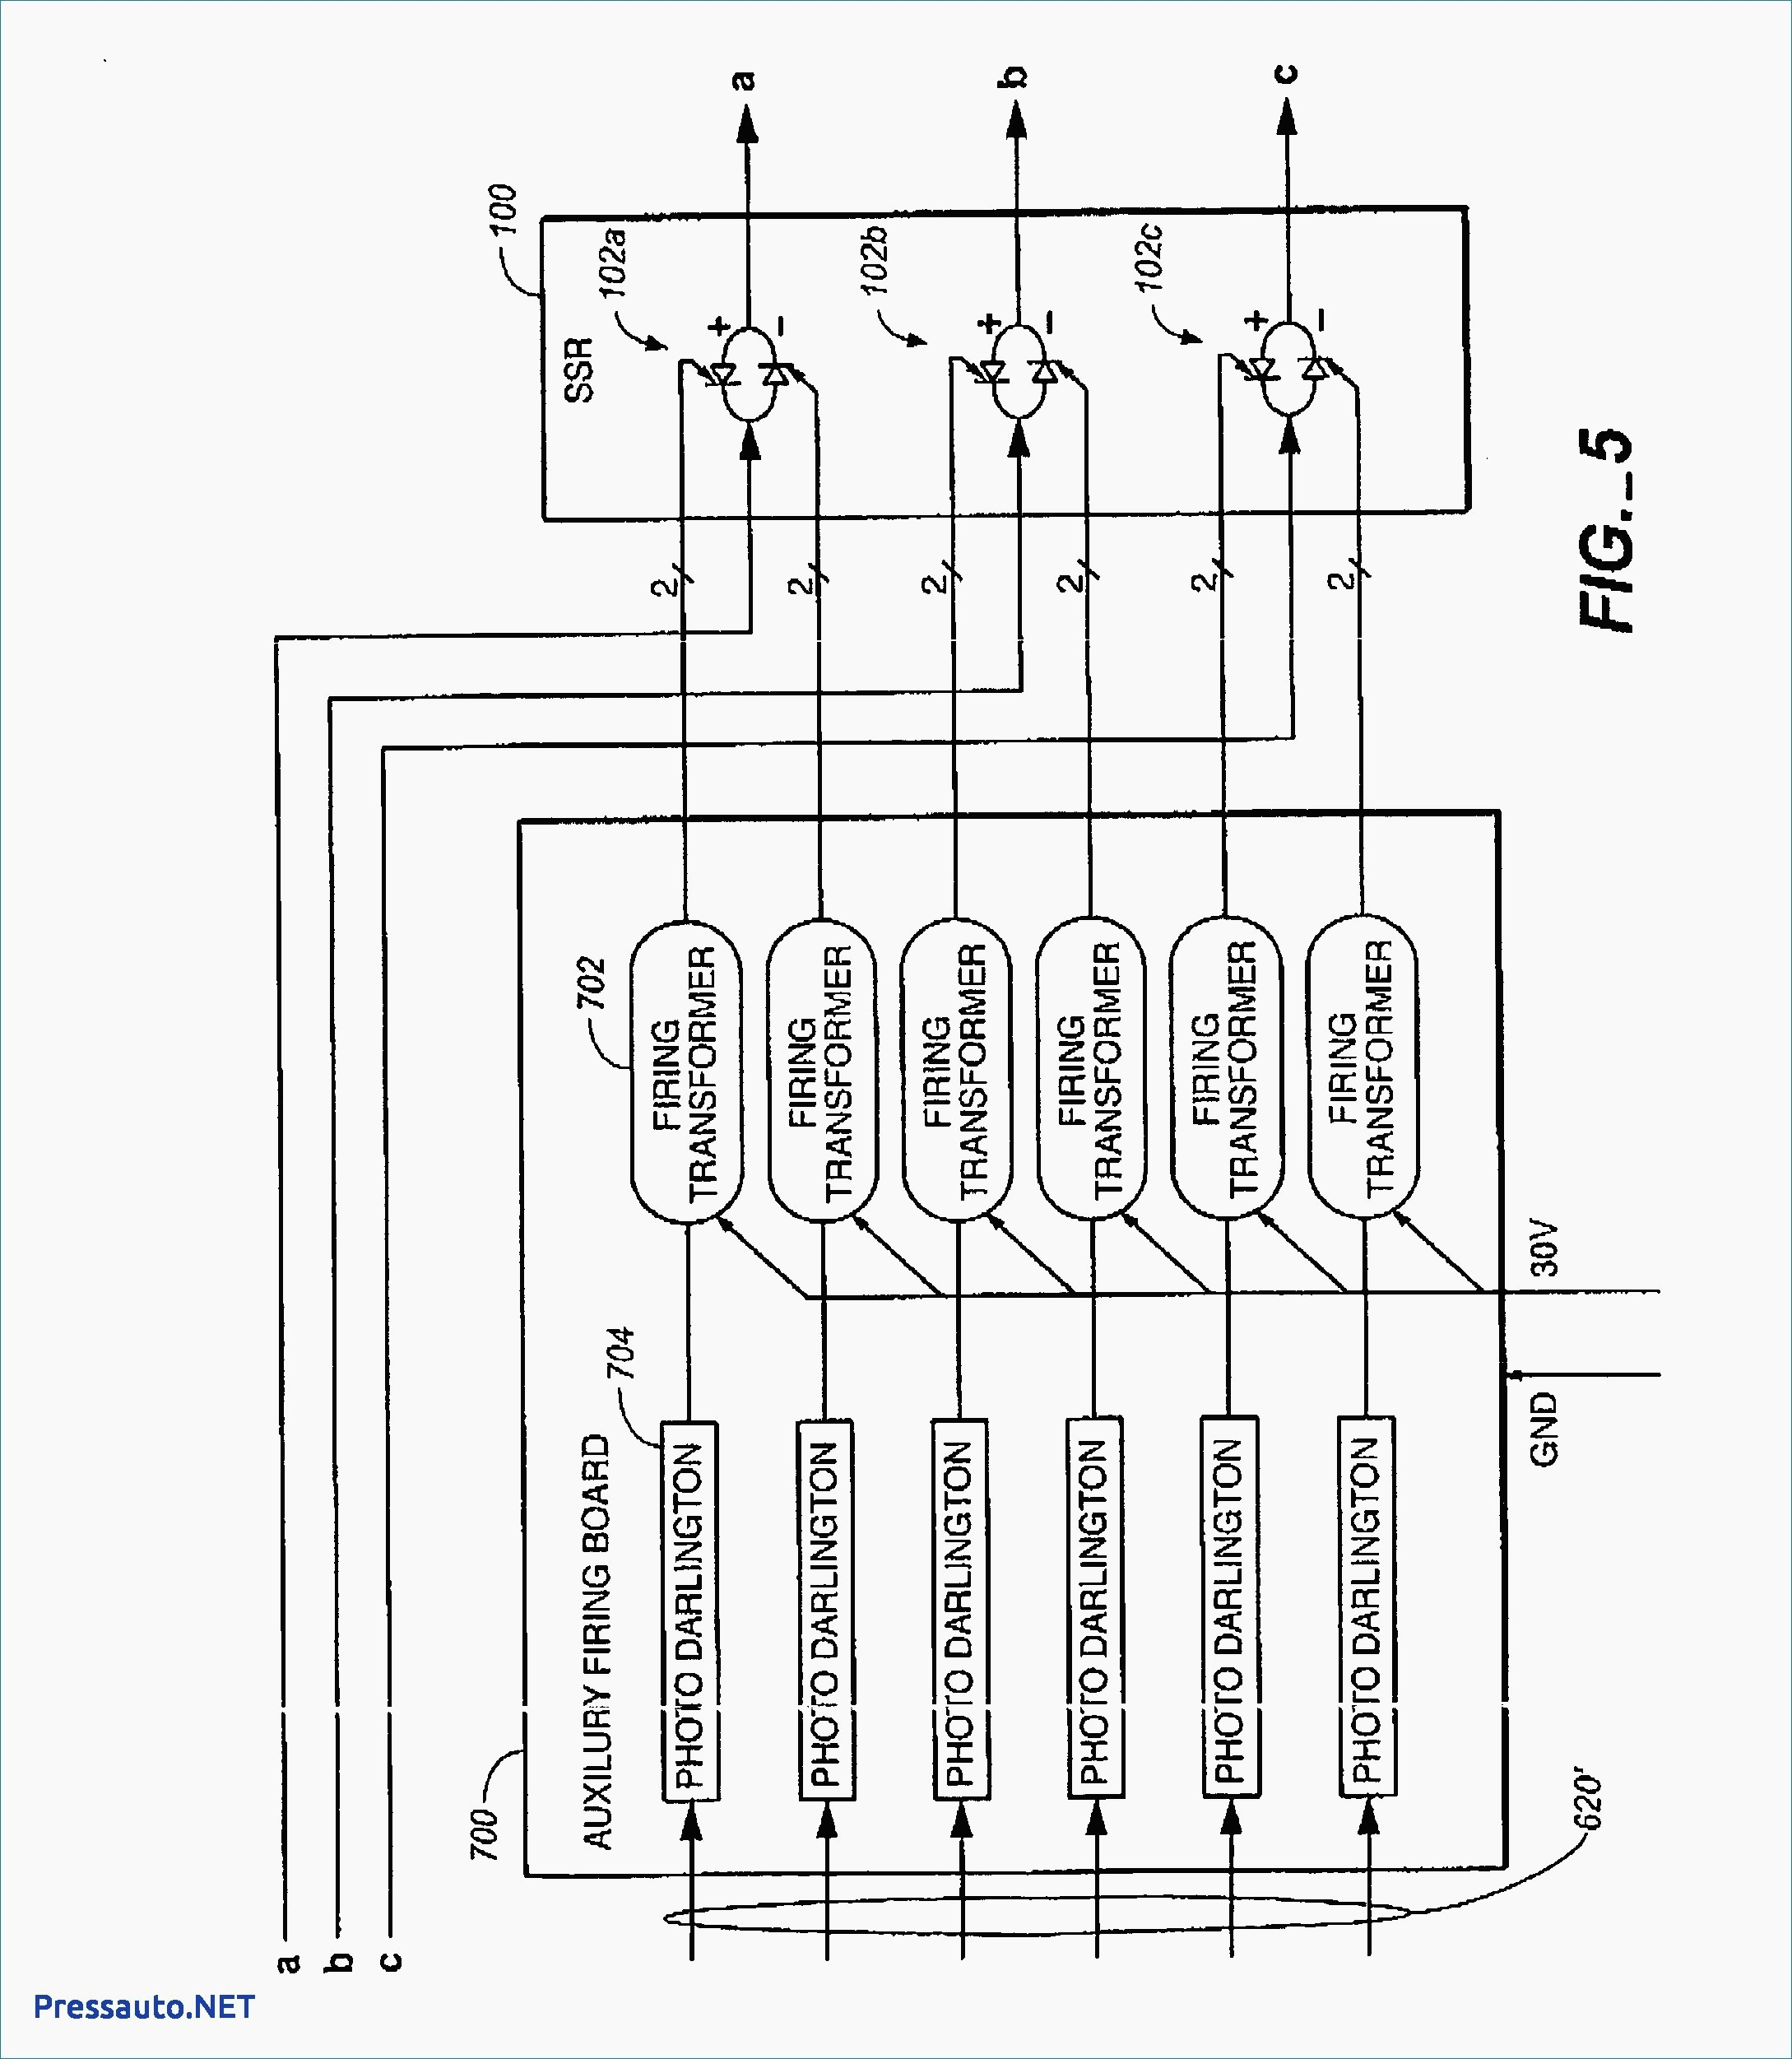 24 volt ac transformer wiring diagram